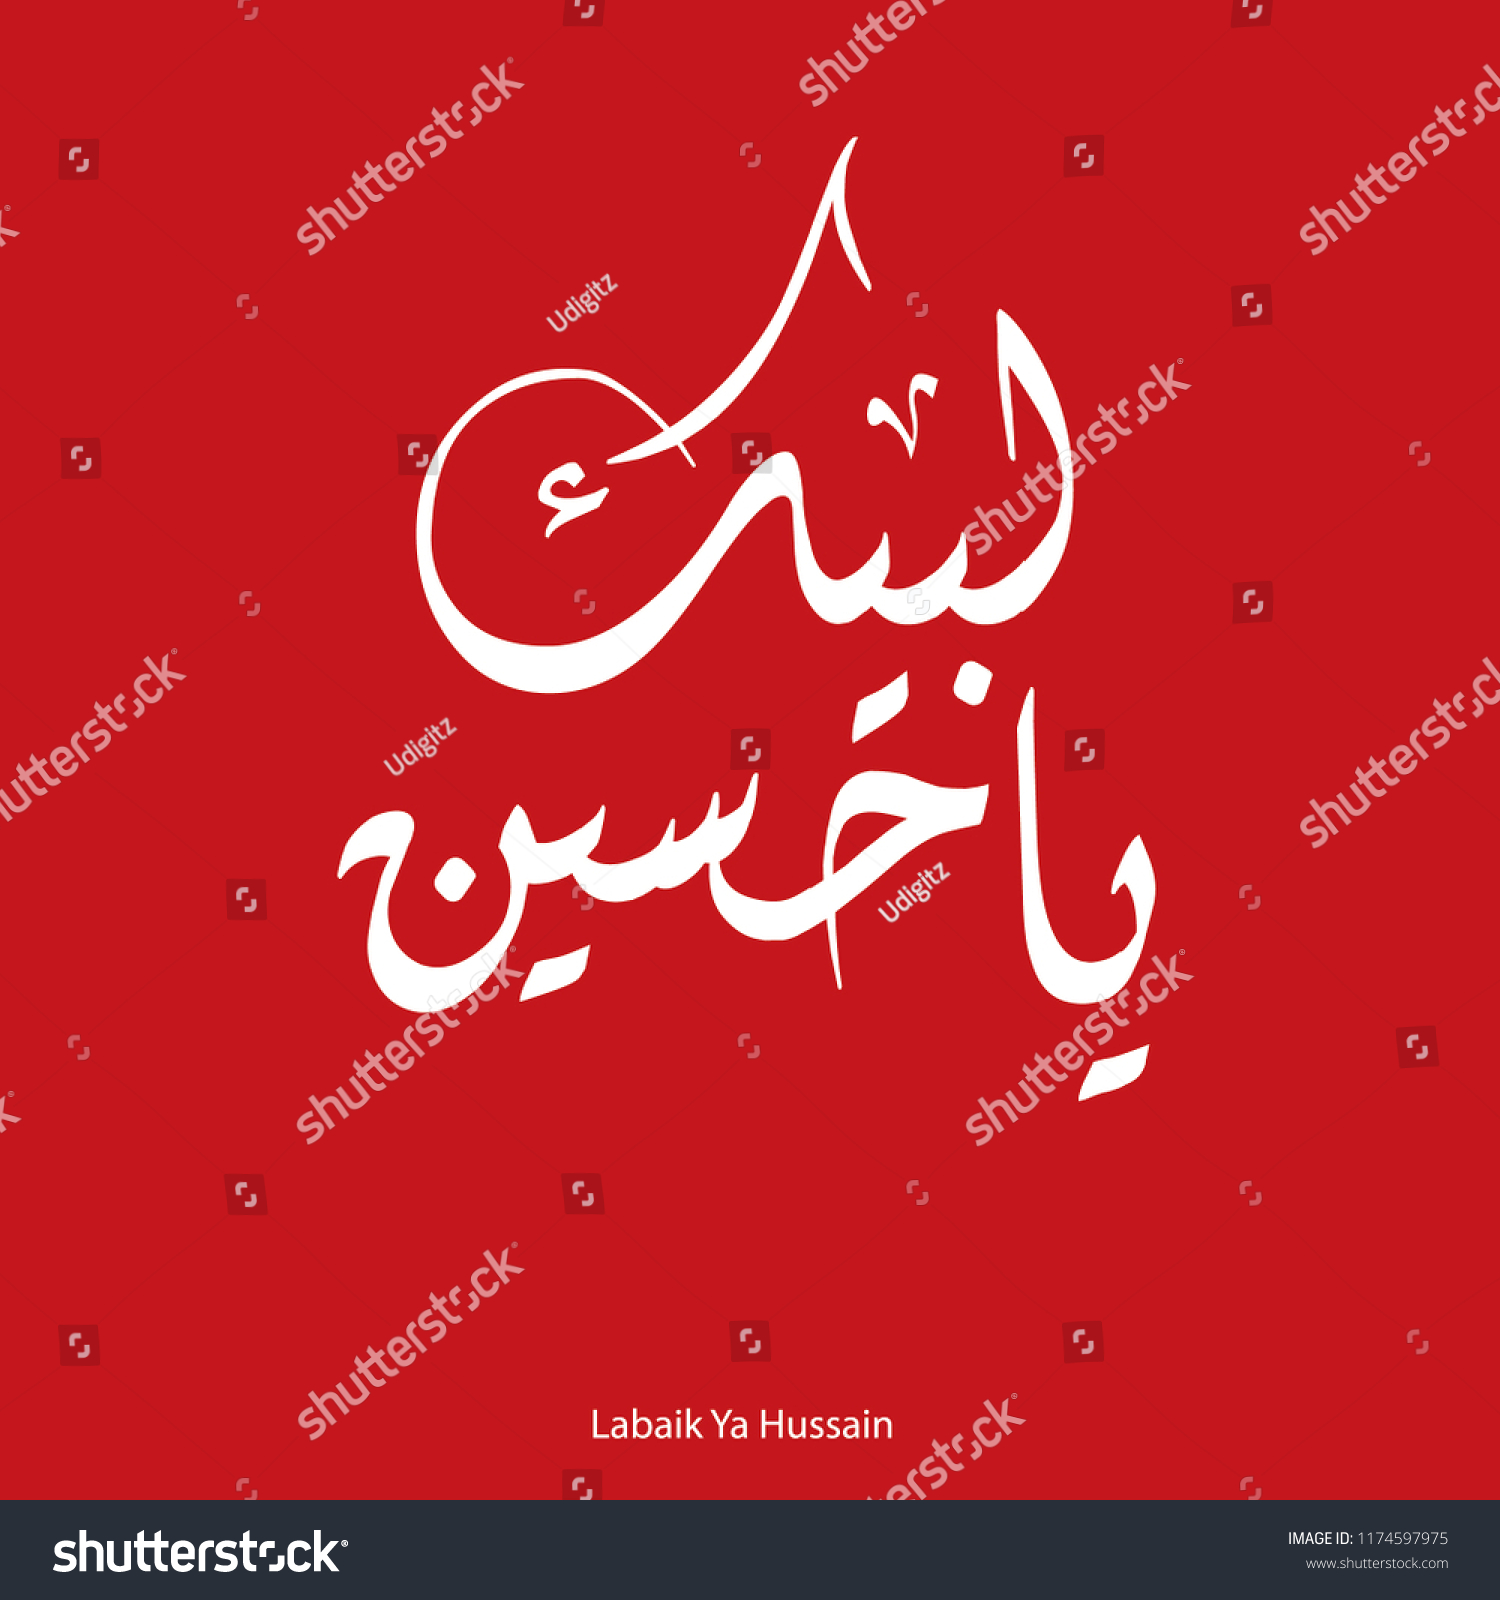 Urdu Calligraphy Font Free Download Labaik Ya Hussain Urdu Calligraphy Stock Vector Royalty Free